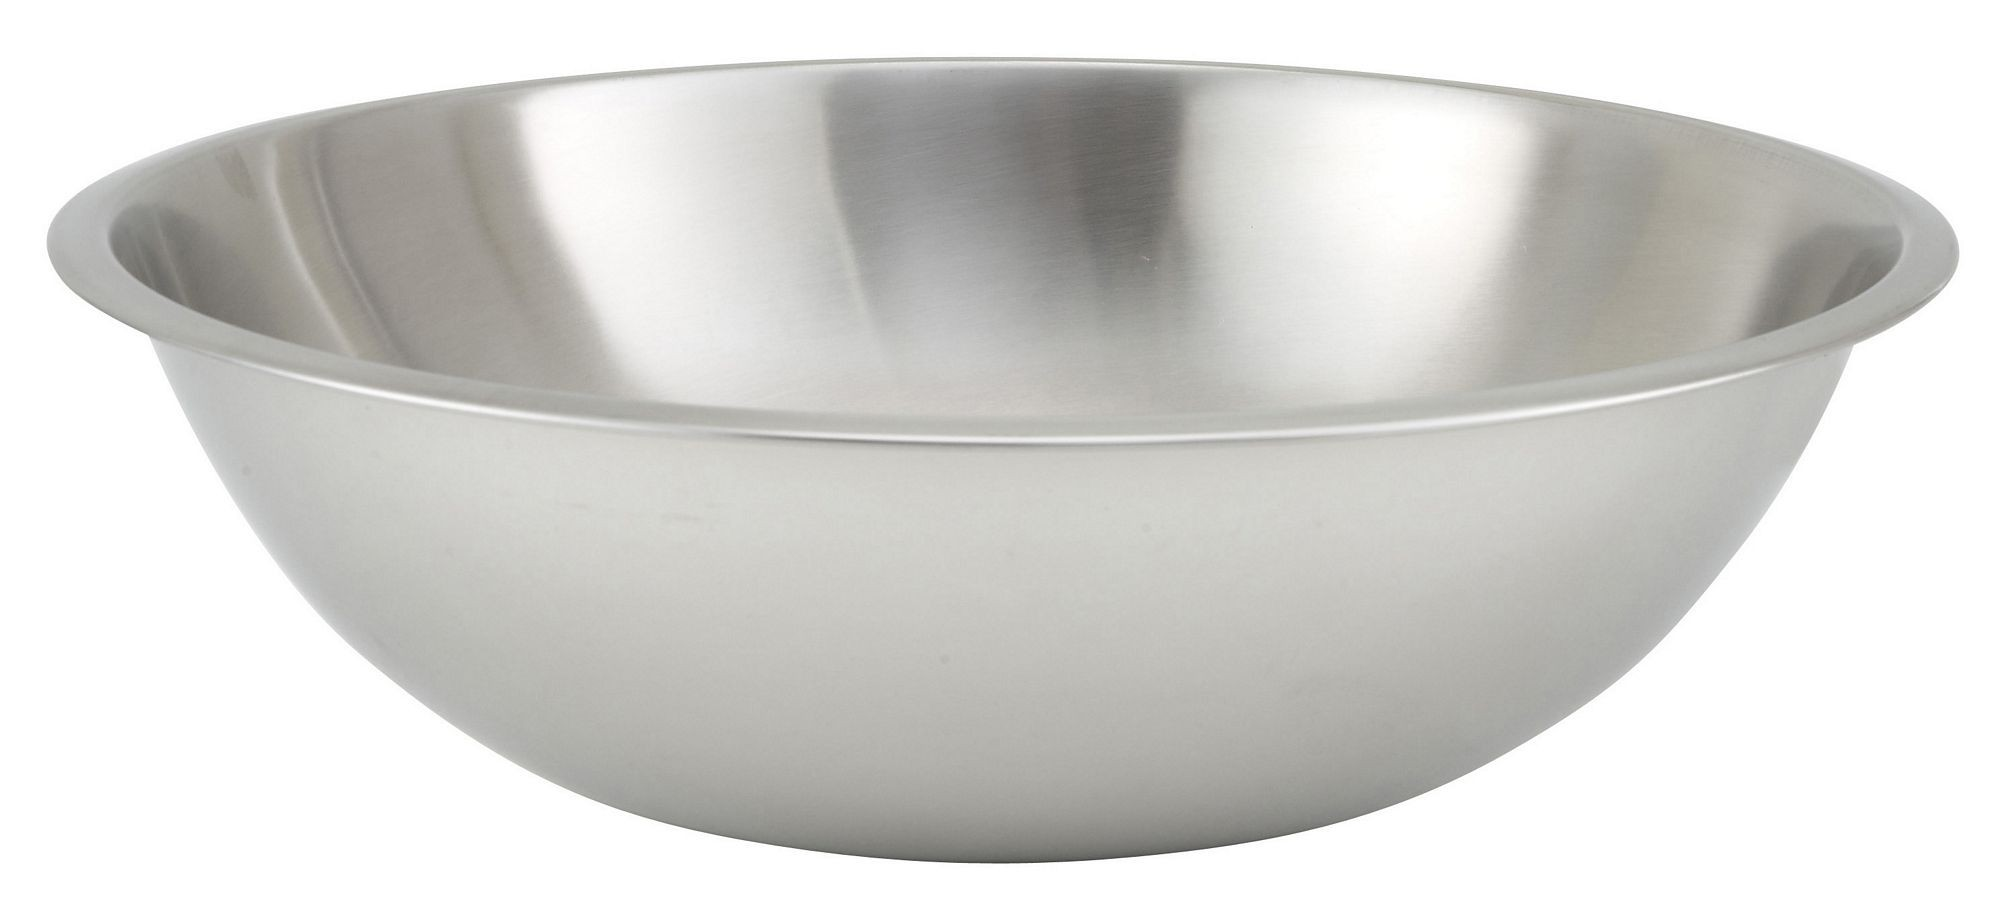 Winco MXHV-1300 Heavy Duty Stainless Steel 13 Qt. Mixing Bowl